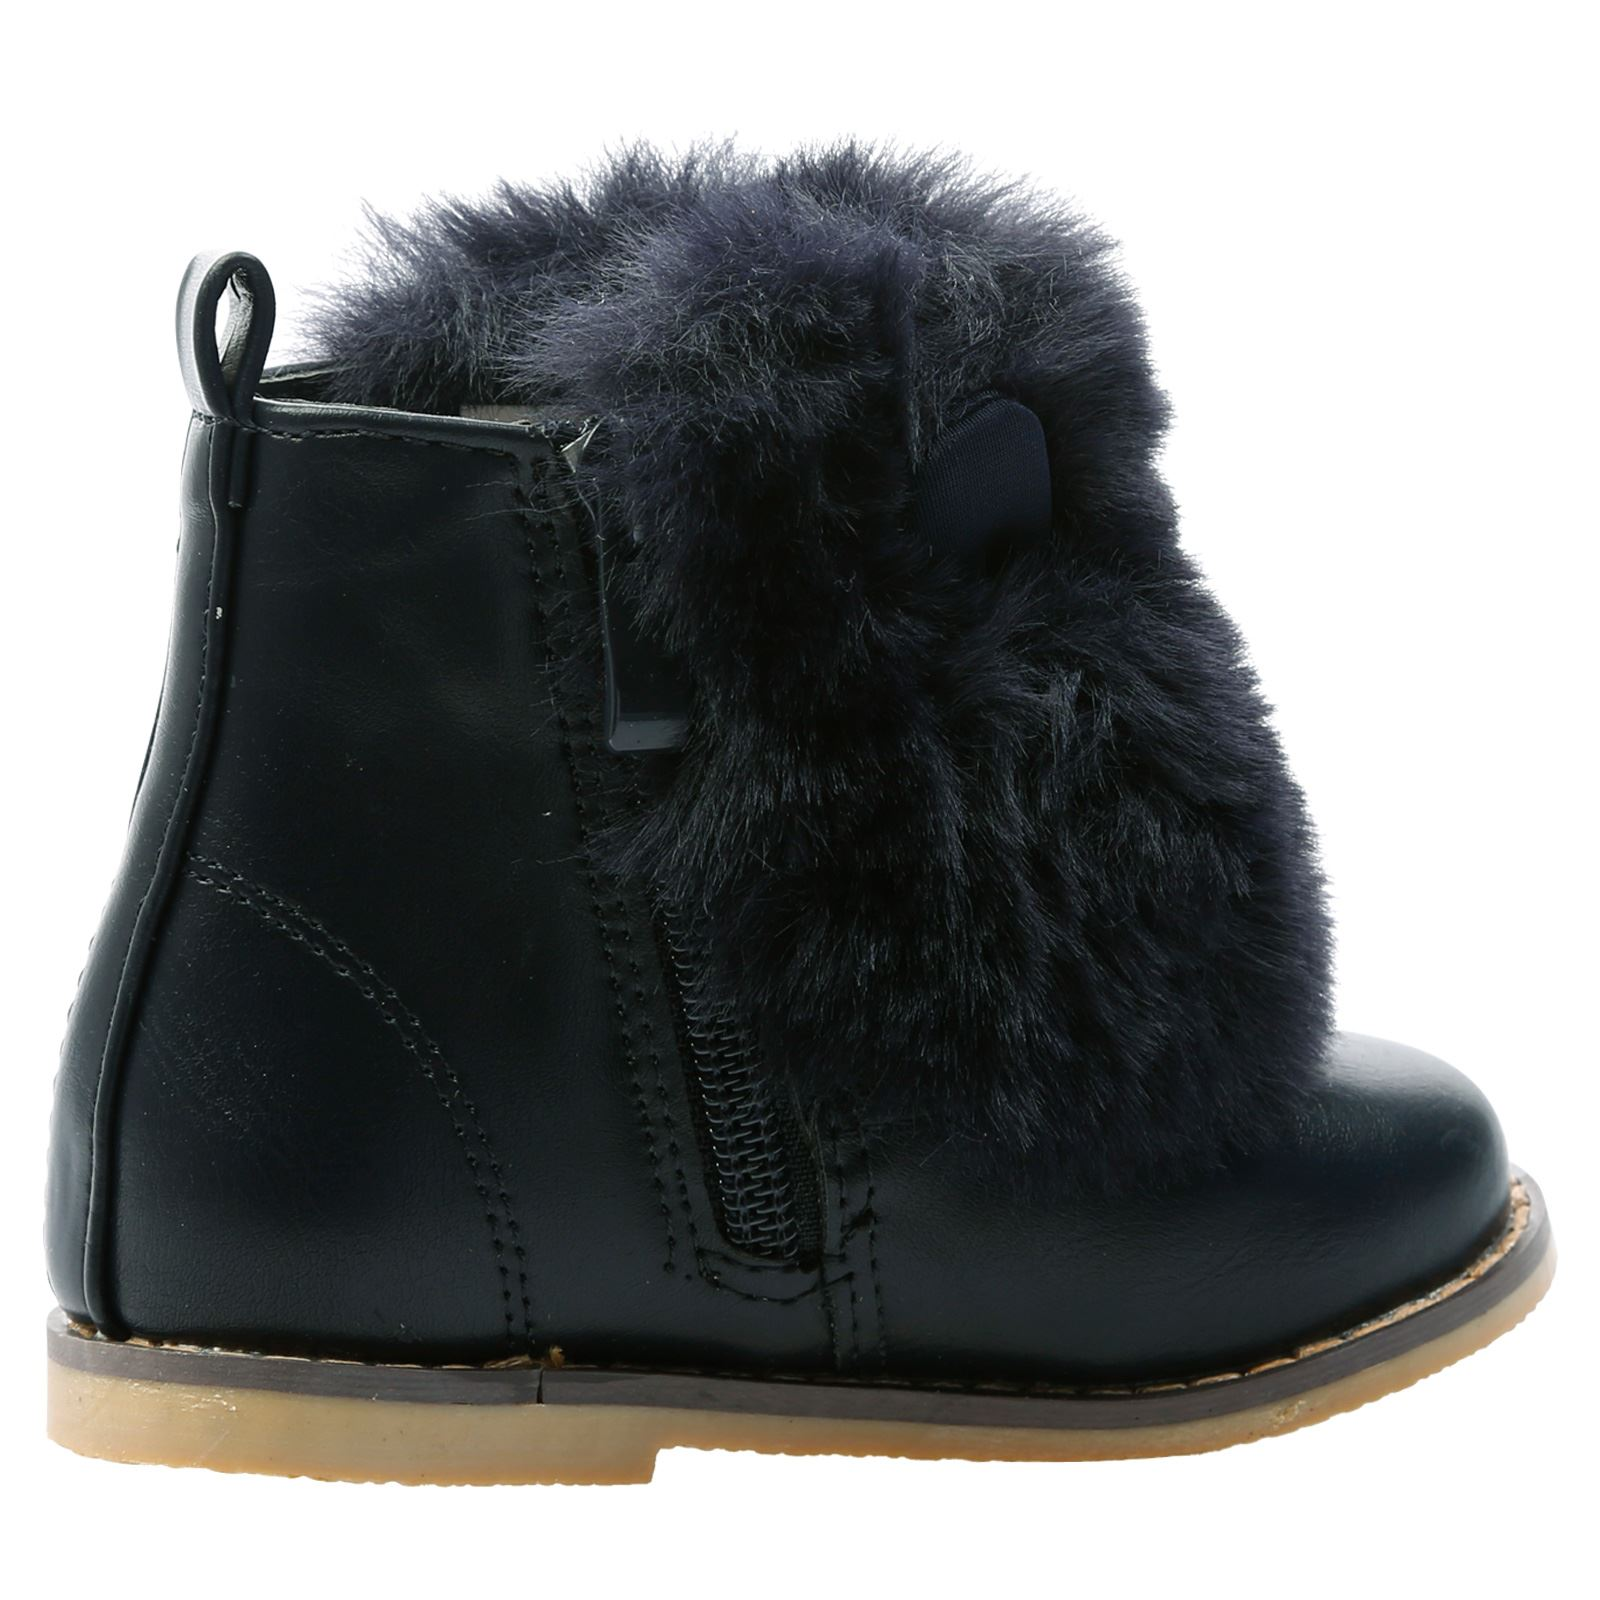 GIRLS ANKLE BOOTS KIDS CHILDRENS INFANTS FUR POM POM SHOES FLUFFY STYLE SIZE NEW